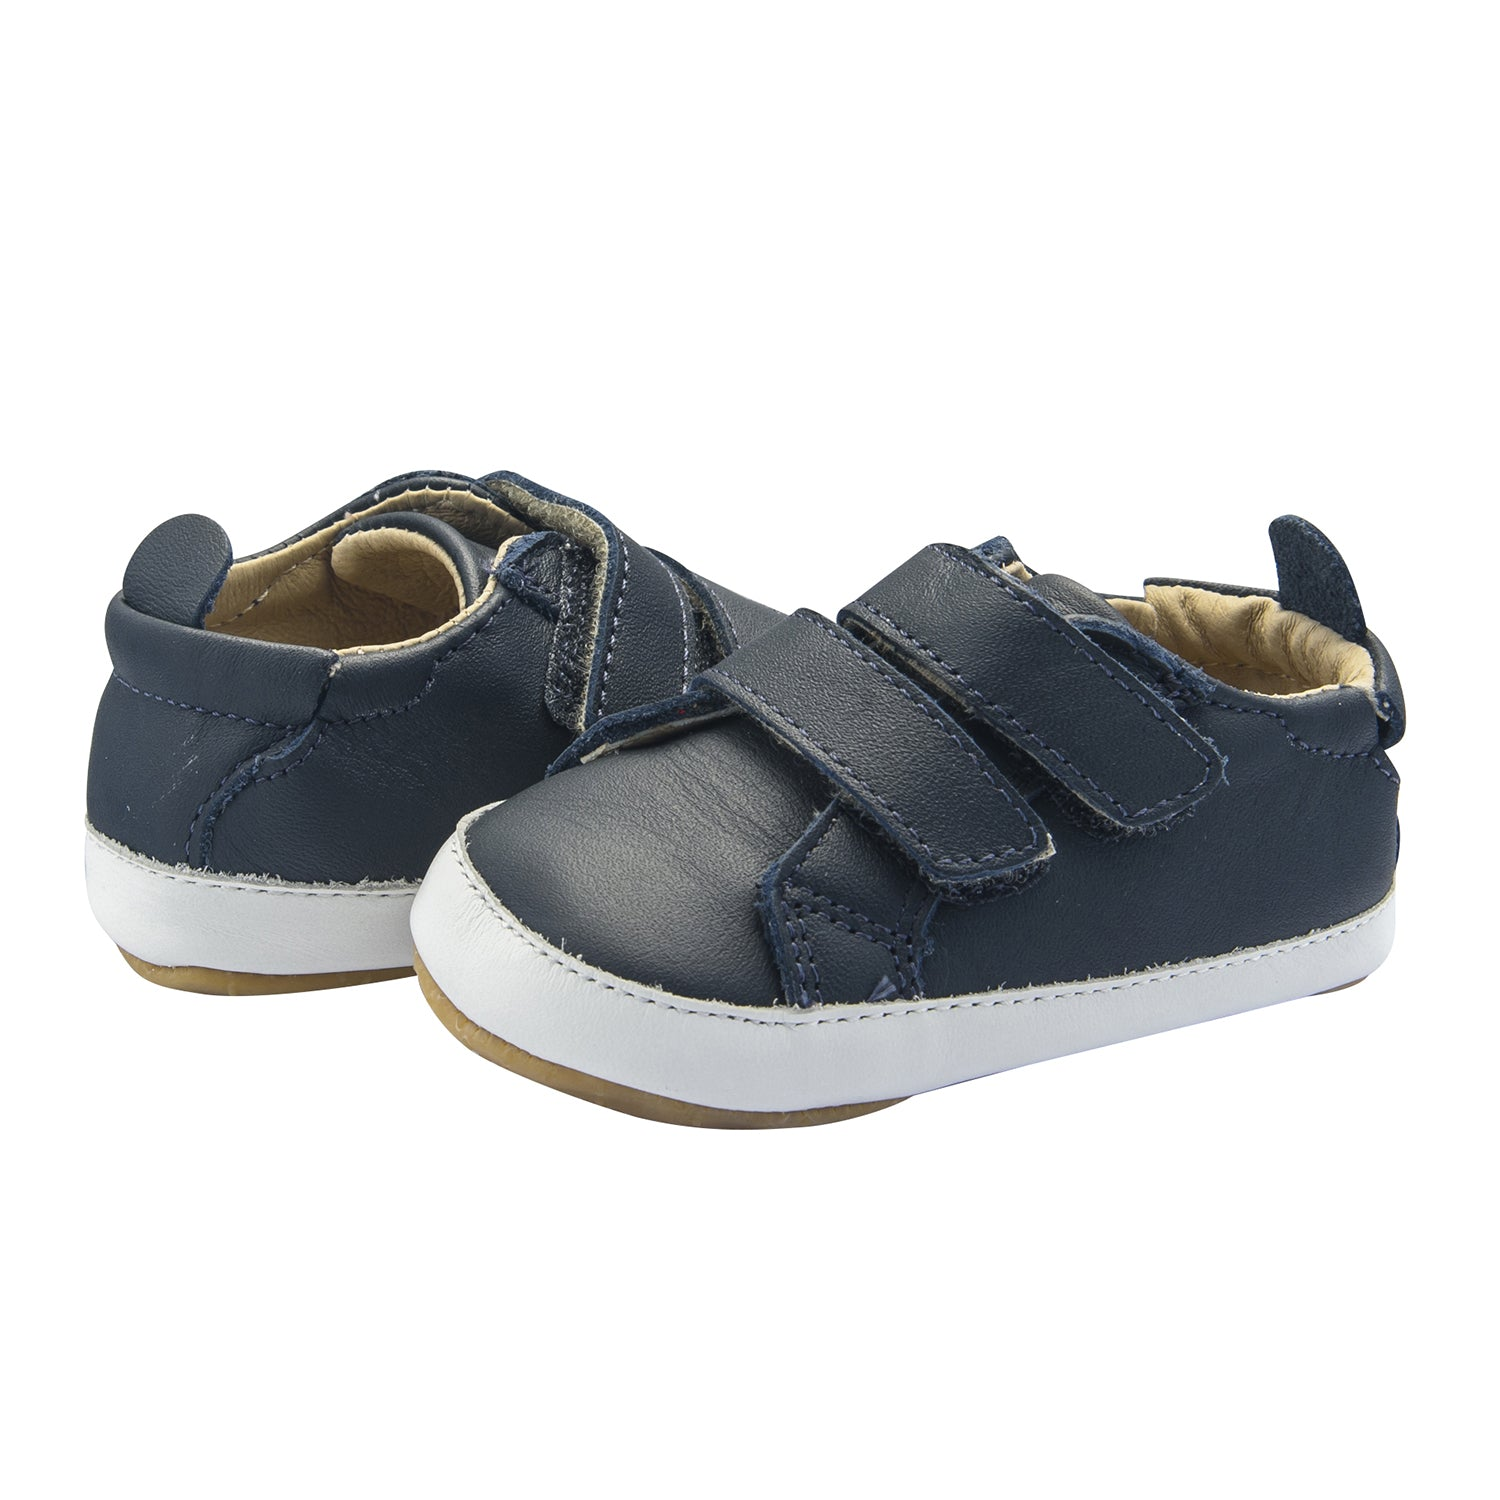 Old Soles Bambini Markert Infant Baby